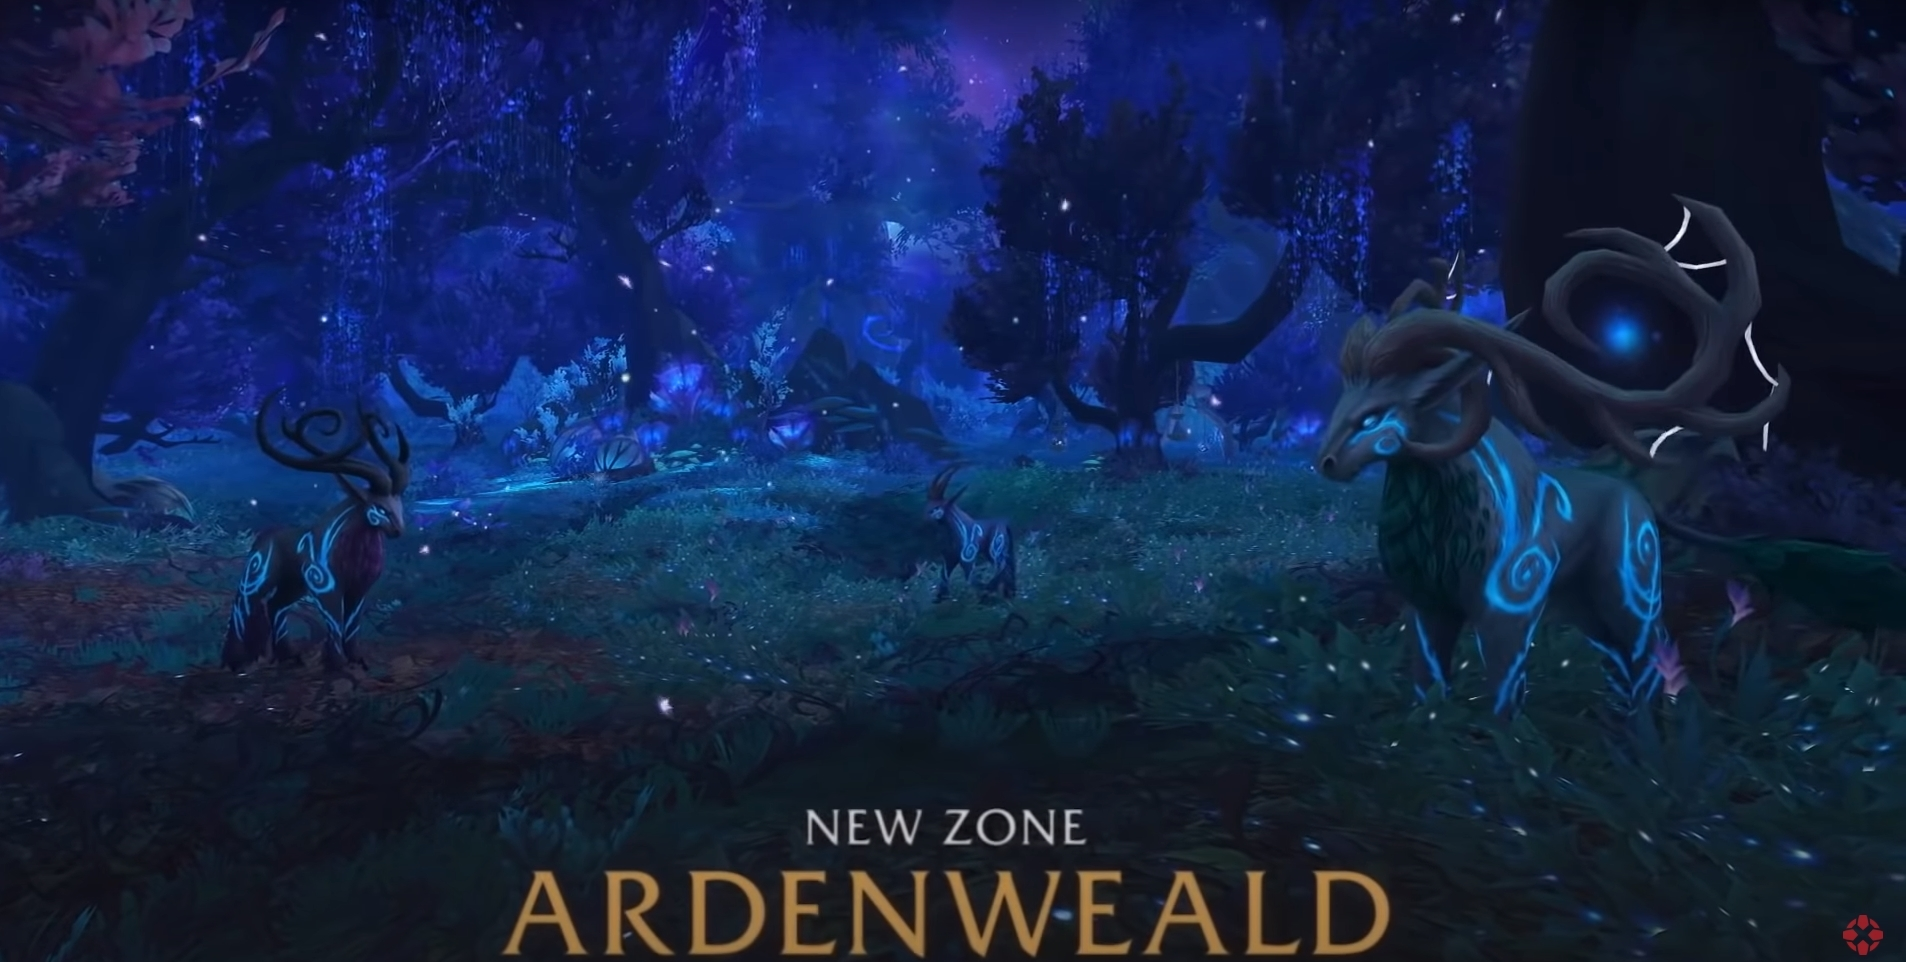 Shadowlands Sneak Peak: The Night Fae Amphitheater In World Of Warcraft: Shadowlands (Spoilers!)